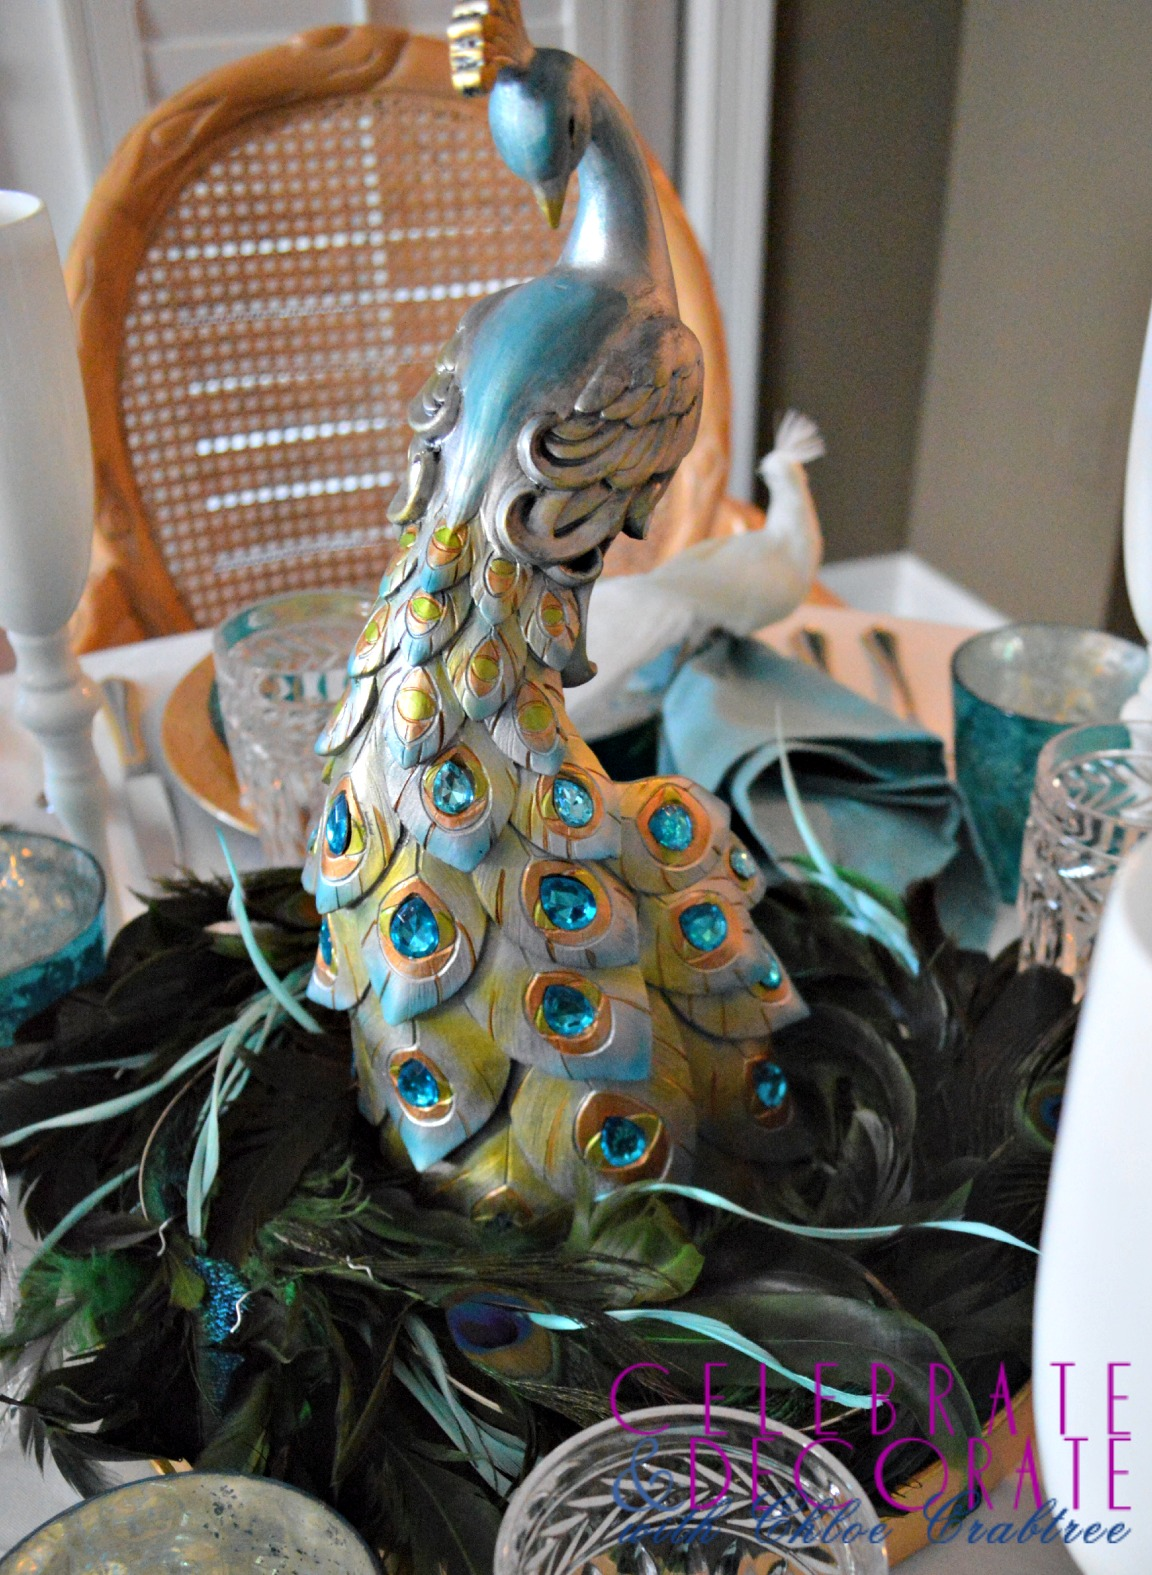 Peacock Tablescape for Christmas  Celebrate  Decorate